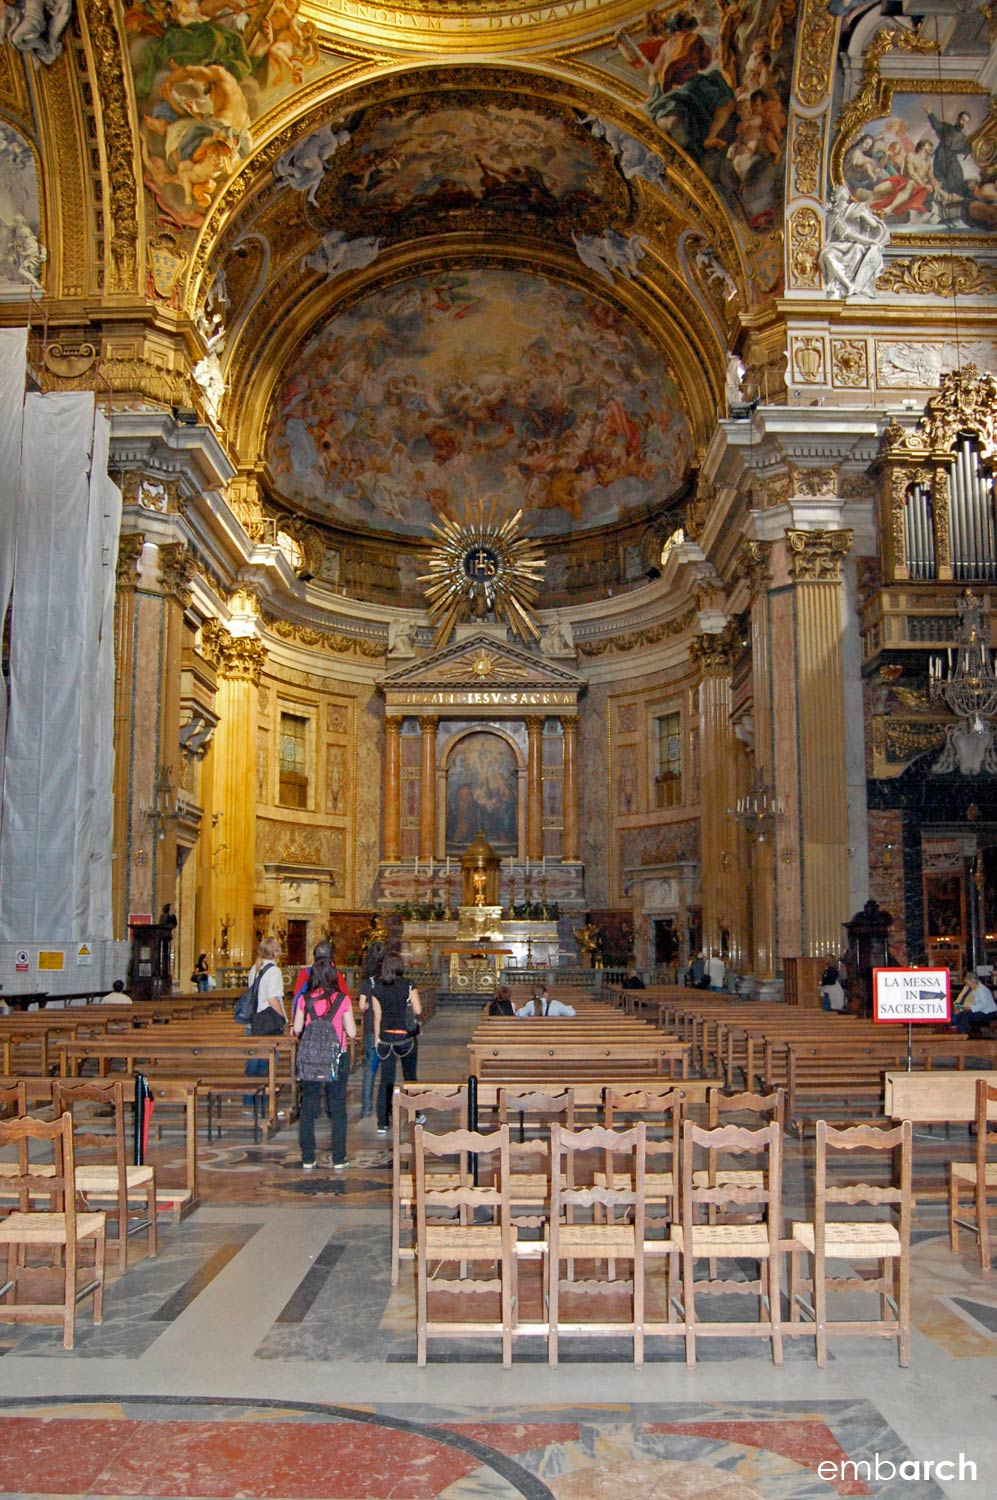 Church of the Gesù - view of interior